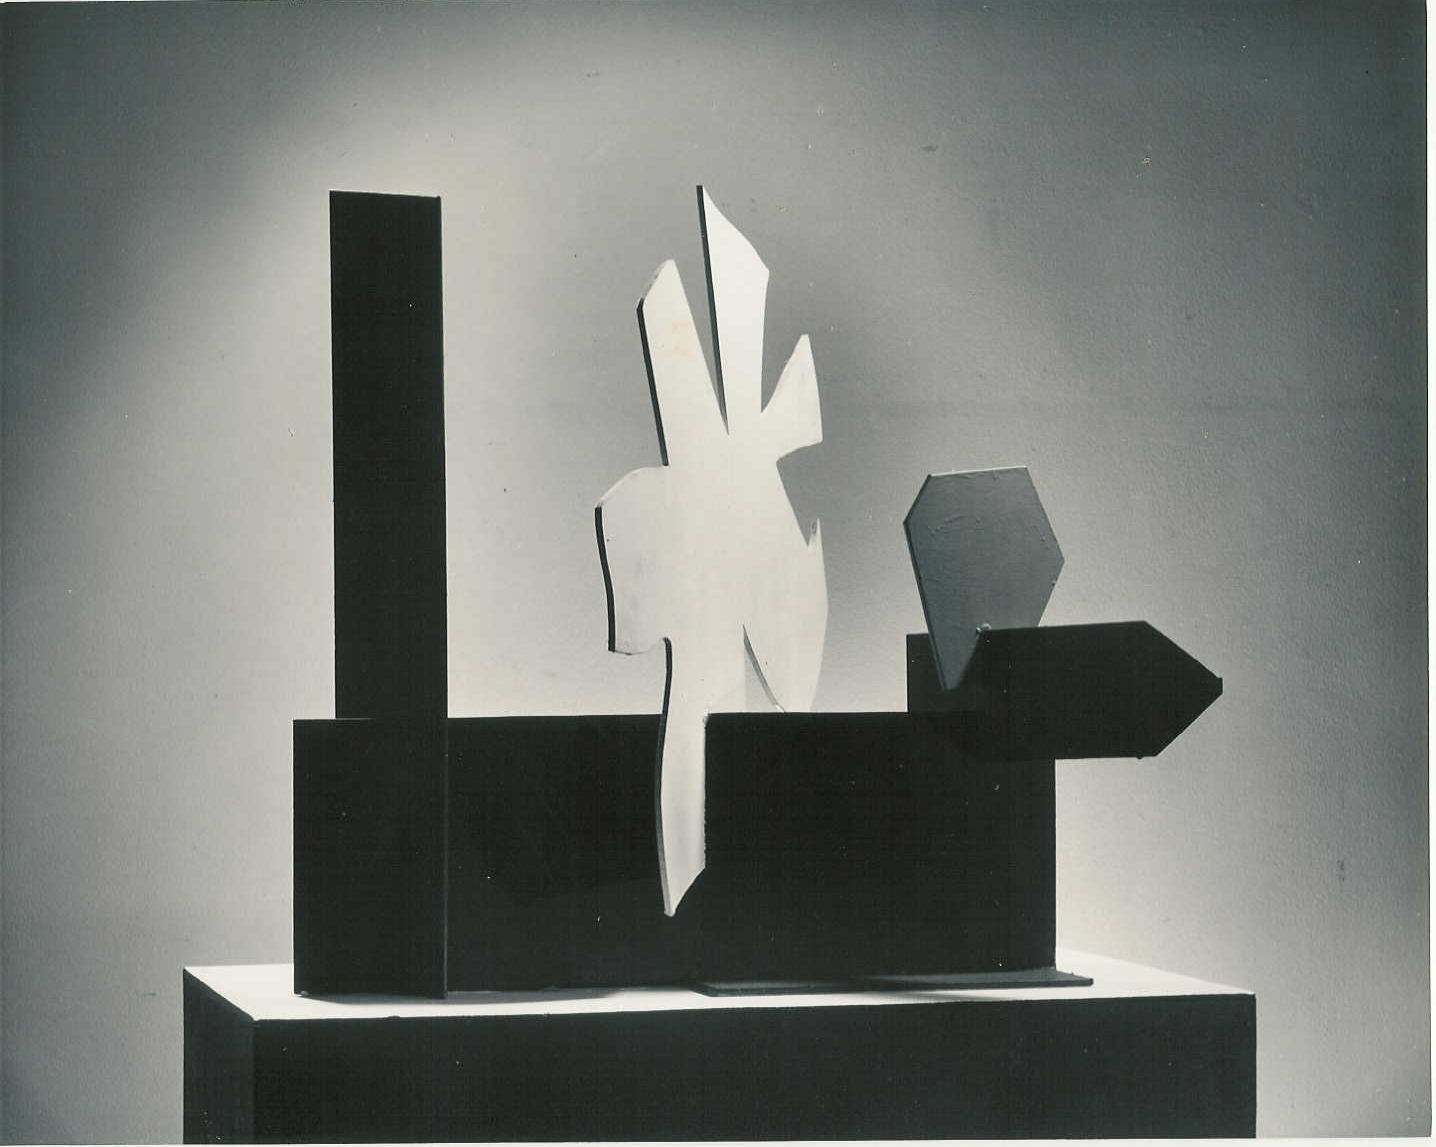 PETALOID WITH HEXAGON, 1968, painted steel, 24 ⅛ x 27 ¾ x 19 ¼""